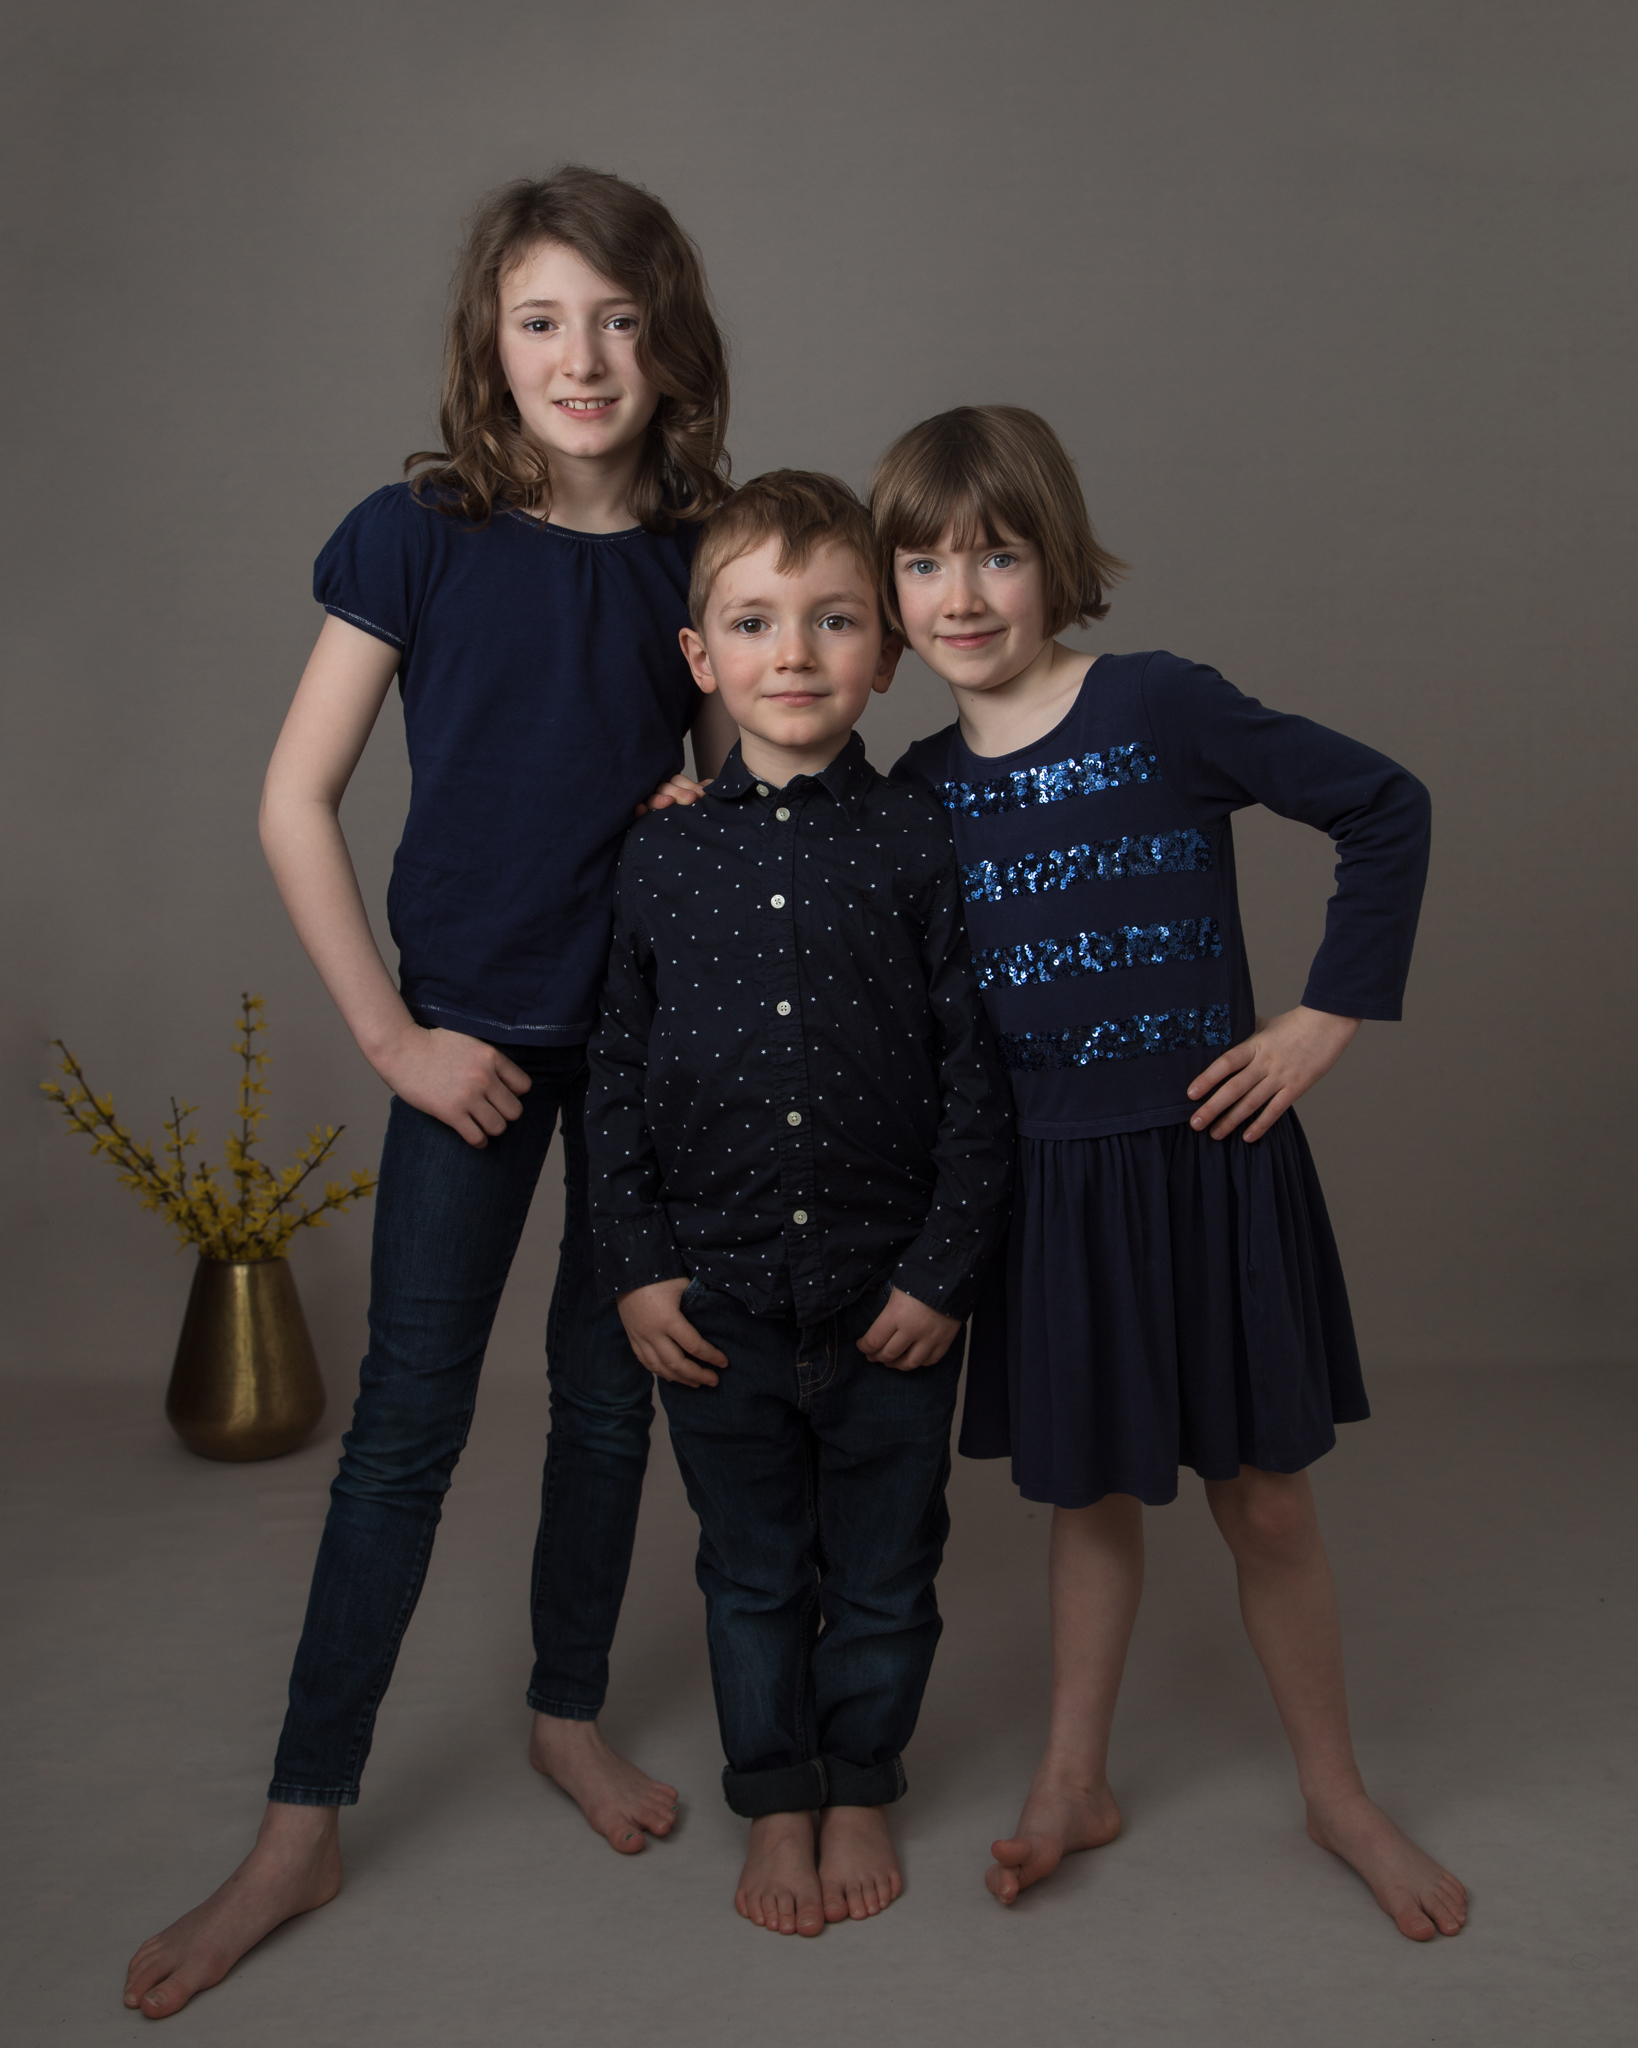 Family photography in studio, Herne Hill, London